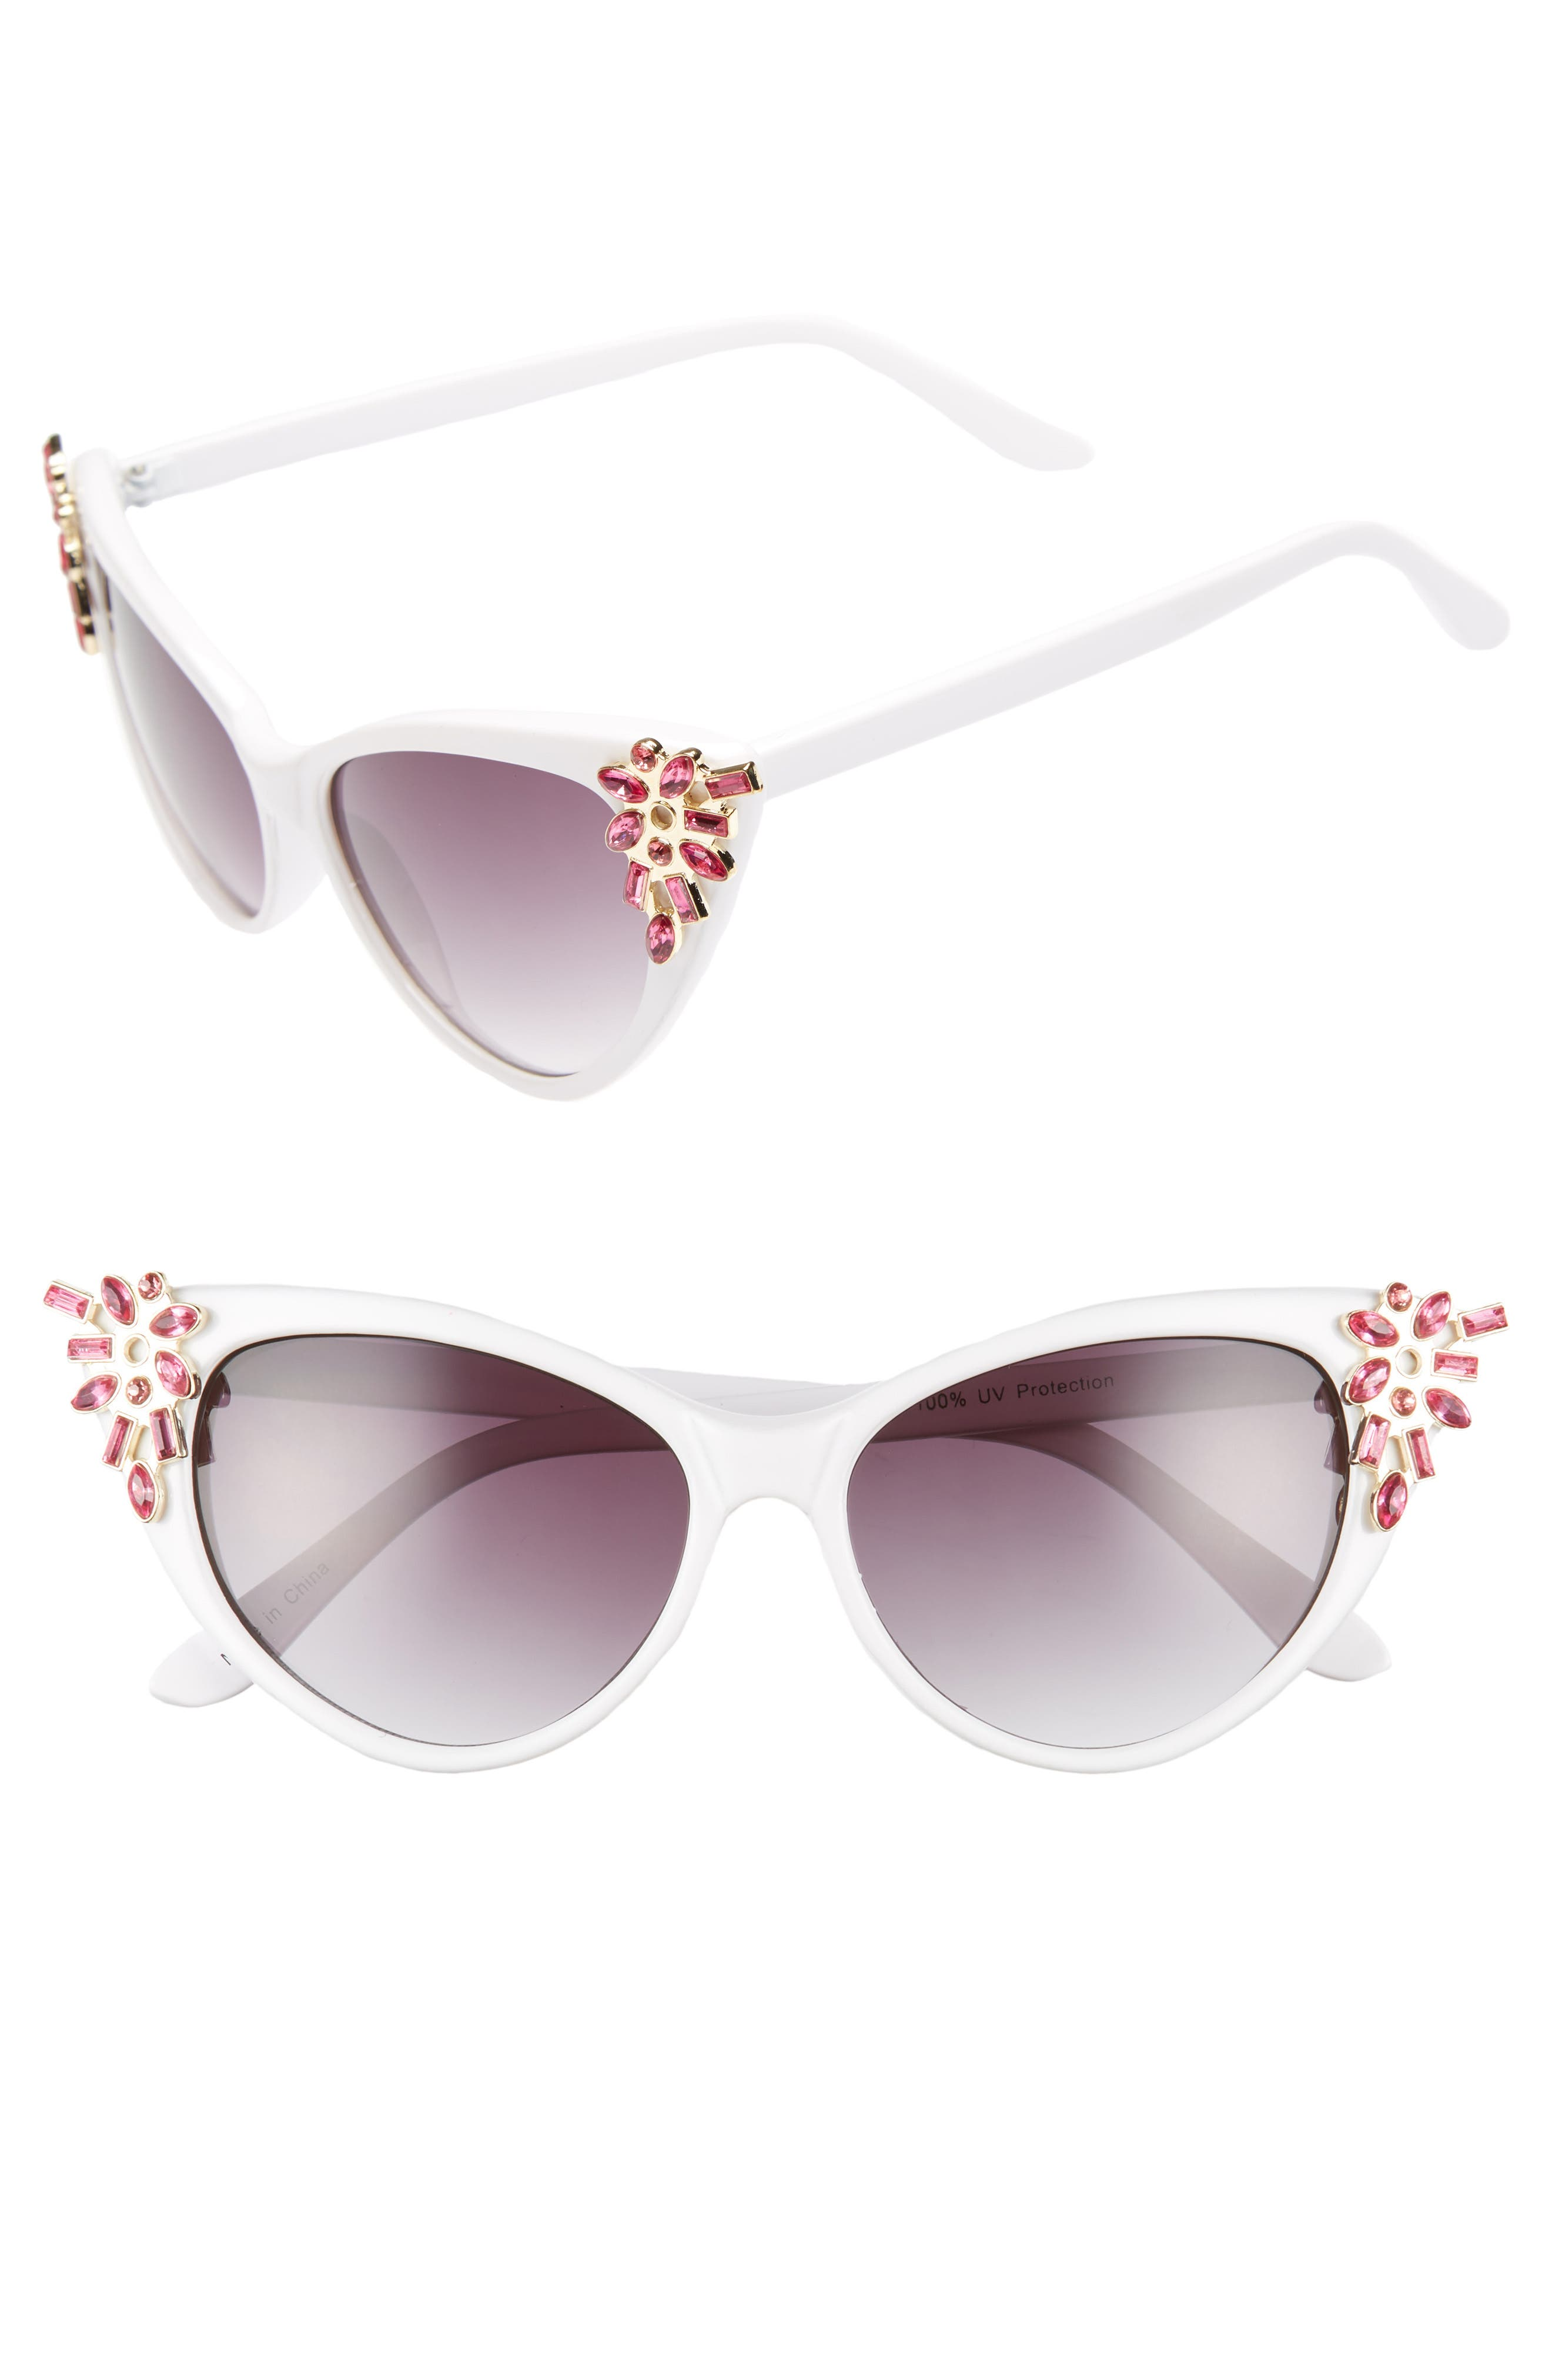 54mm Crystal Exaggerated Cat Eye Sunglasses,                             Main thumbnail 1, color,                             WHITE/ PINK